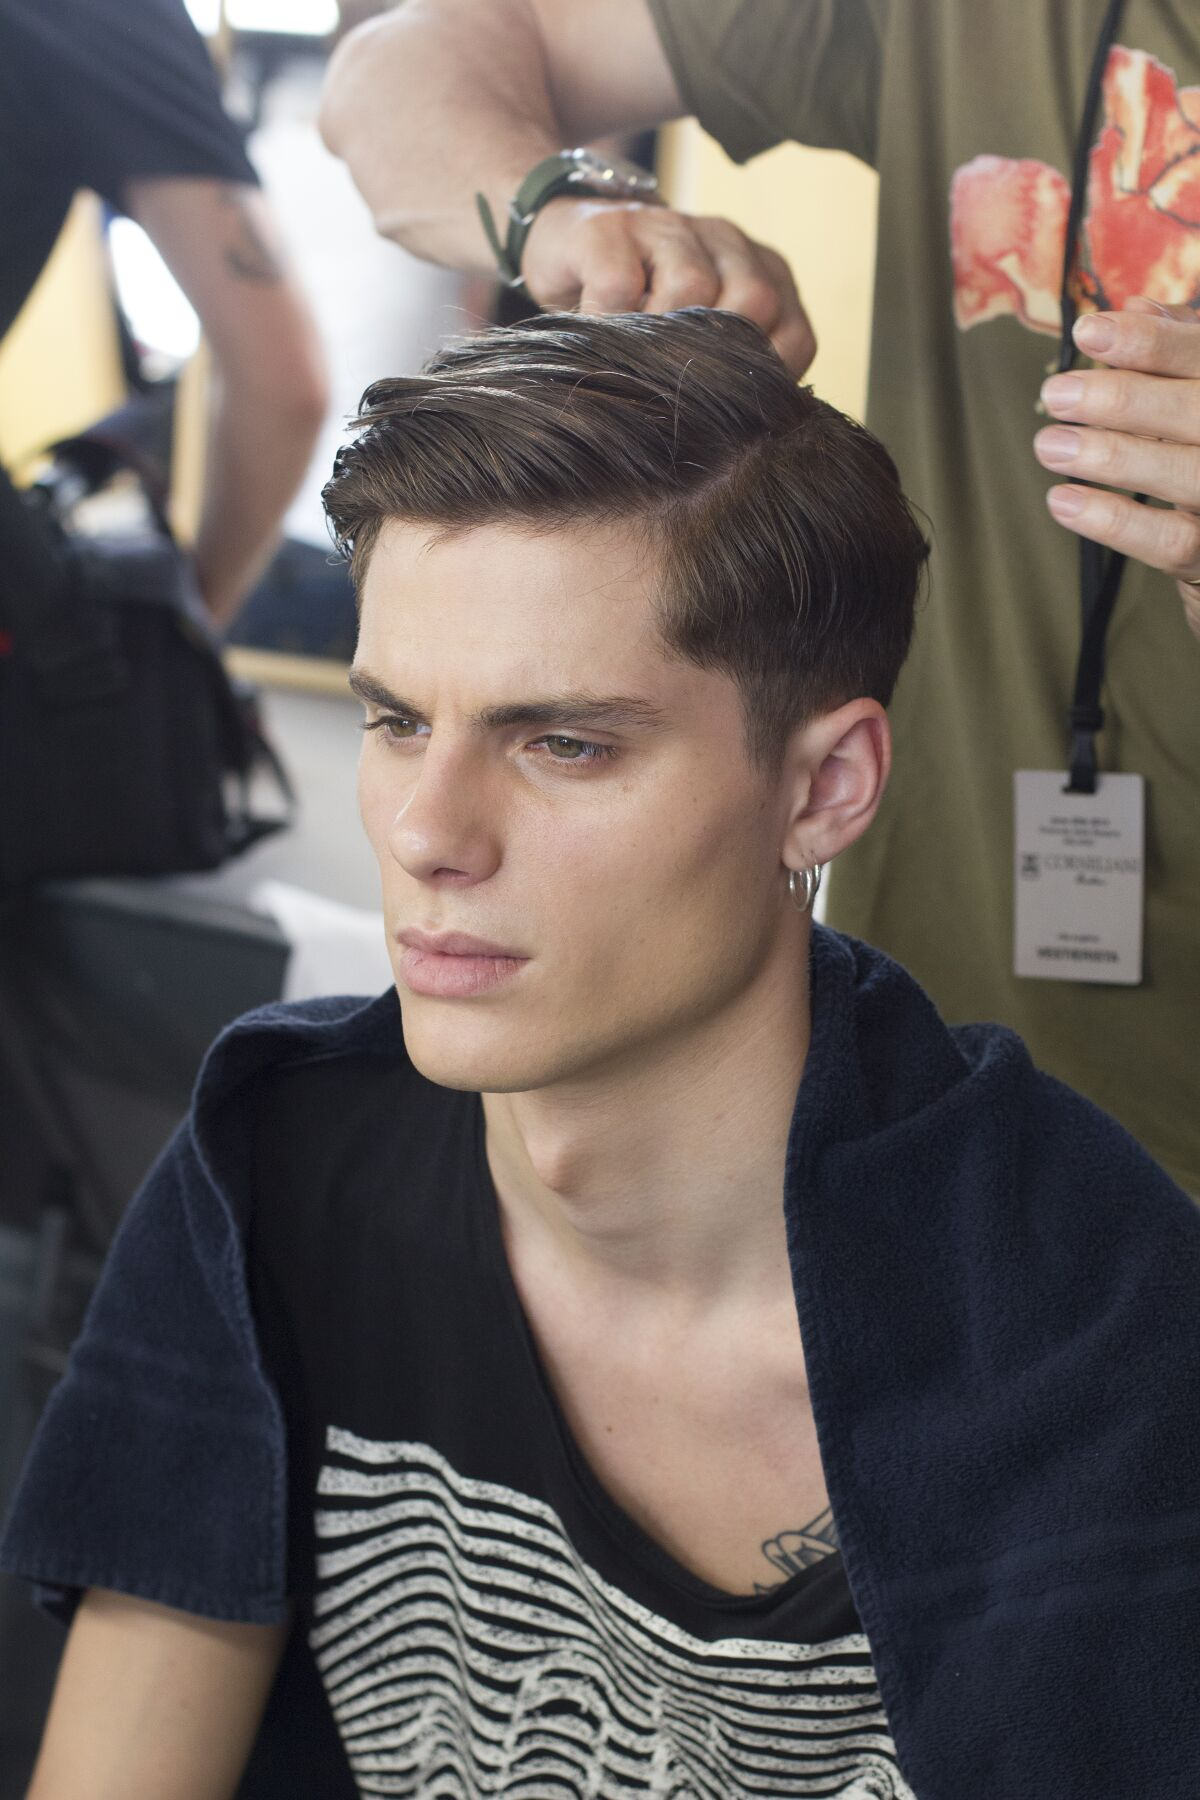 BACKSTAGE CORNELIANI SPRING SUMMER 2014 MENS COLLECTION